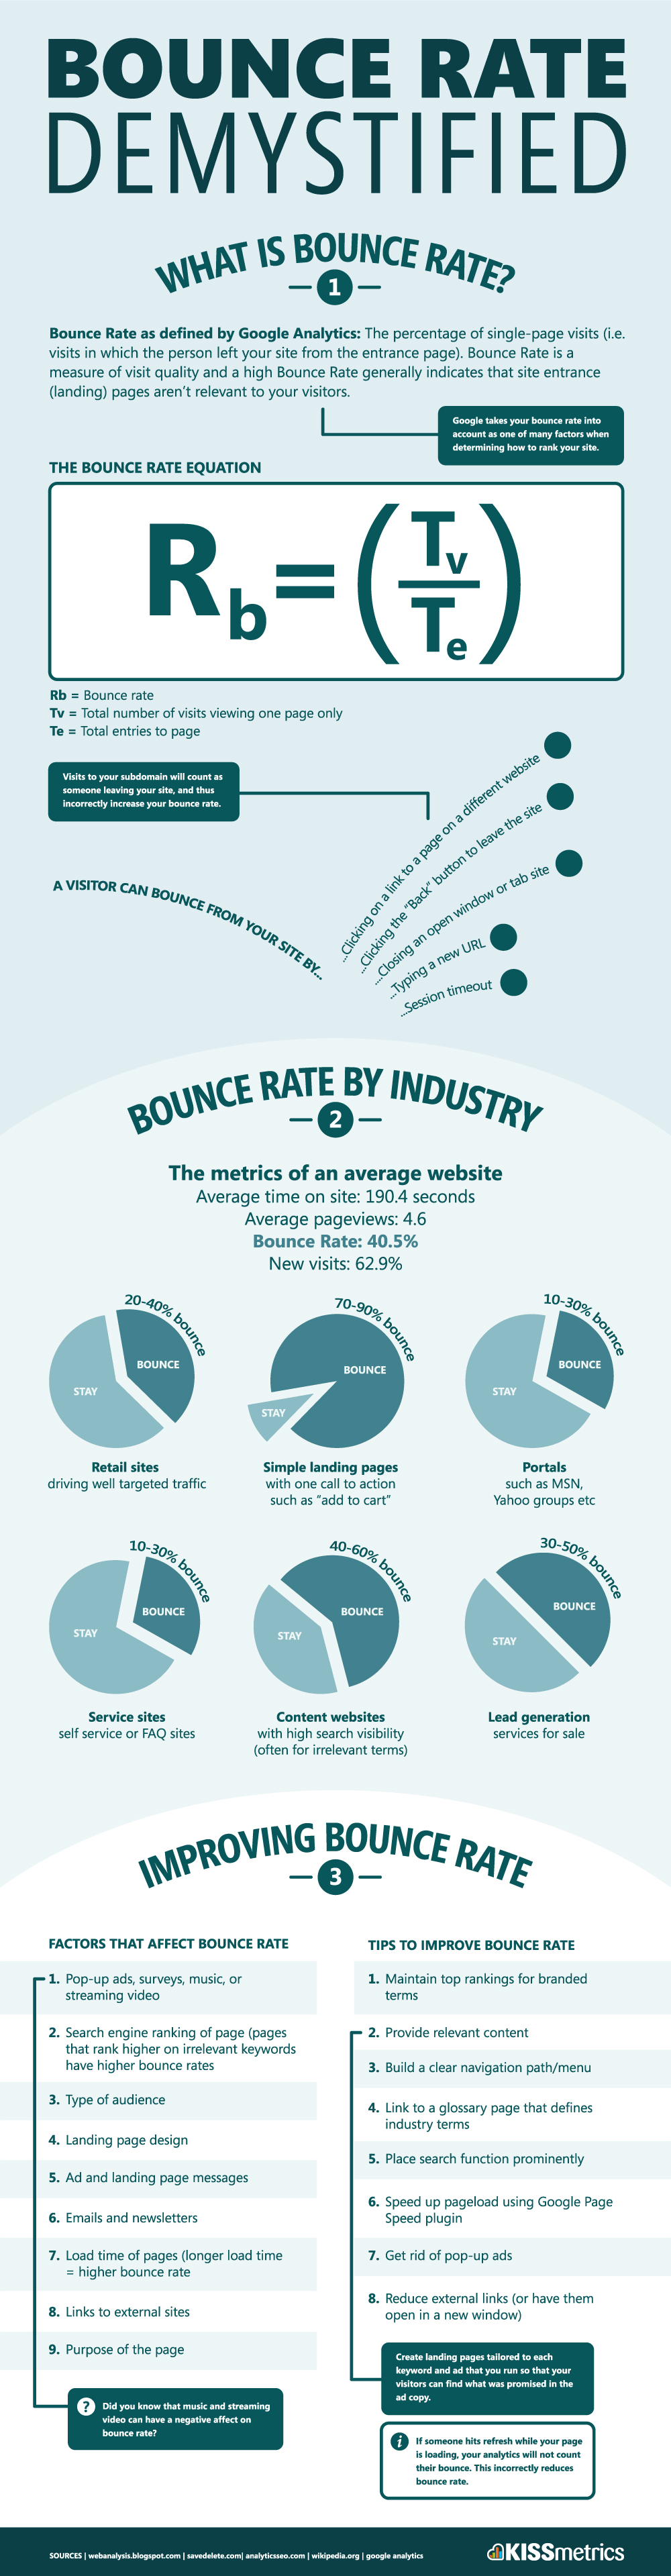 what is bounce rate Bounce Rate Demystified